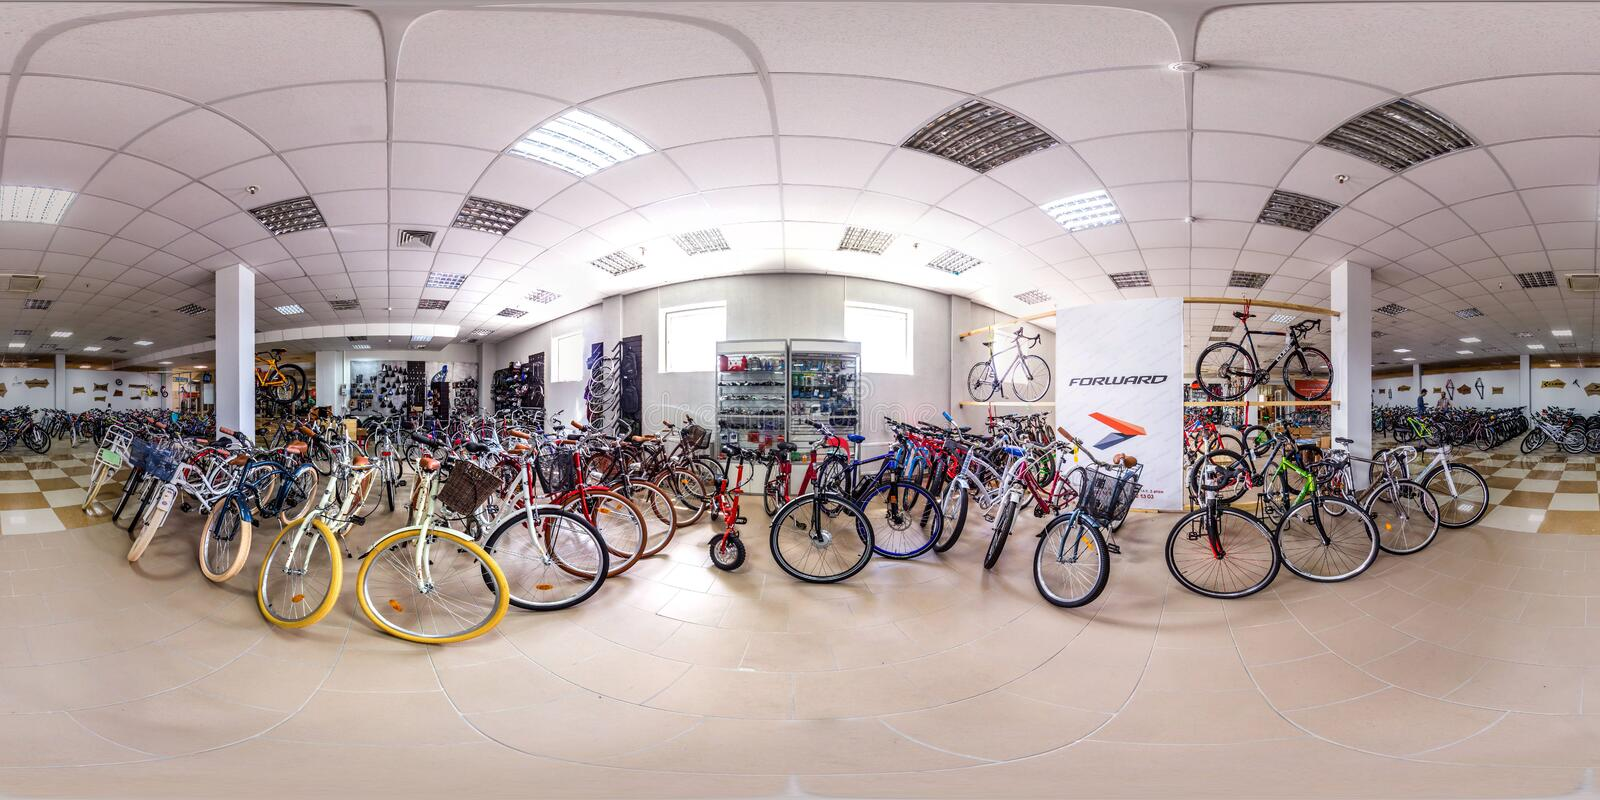 Moscow-2018: 3D spherical panorama with 360 degree viewing angle of empty interior of bicycle store with a lot of bike. Full equir. Moscow-2018: 3D spherical royalty free stock photo